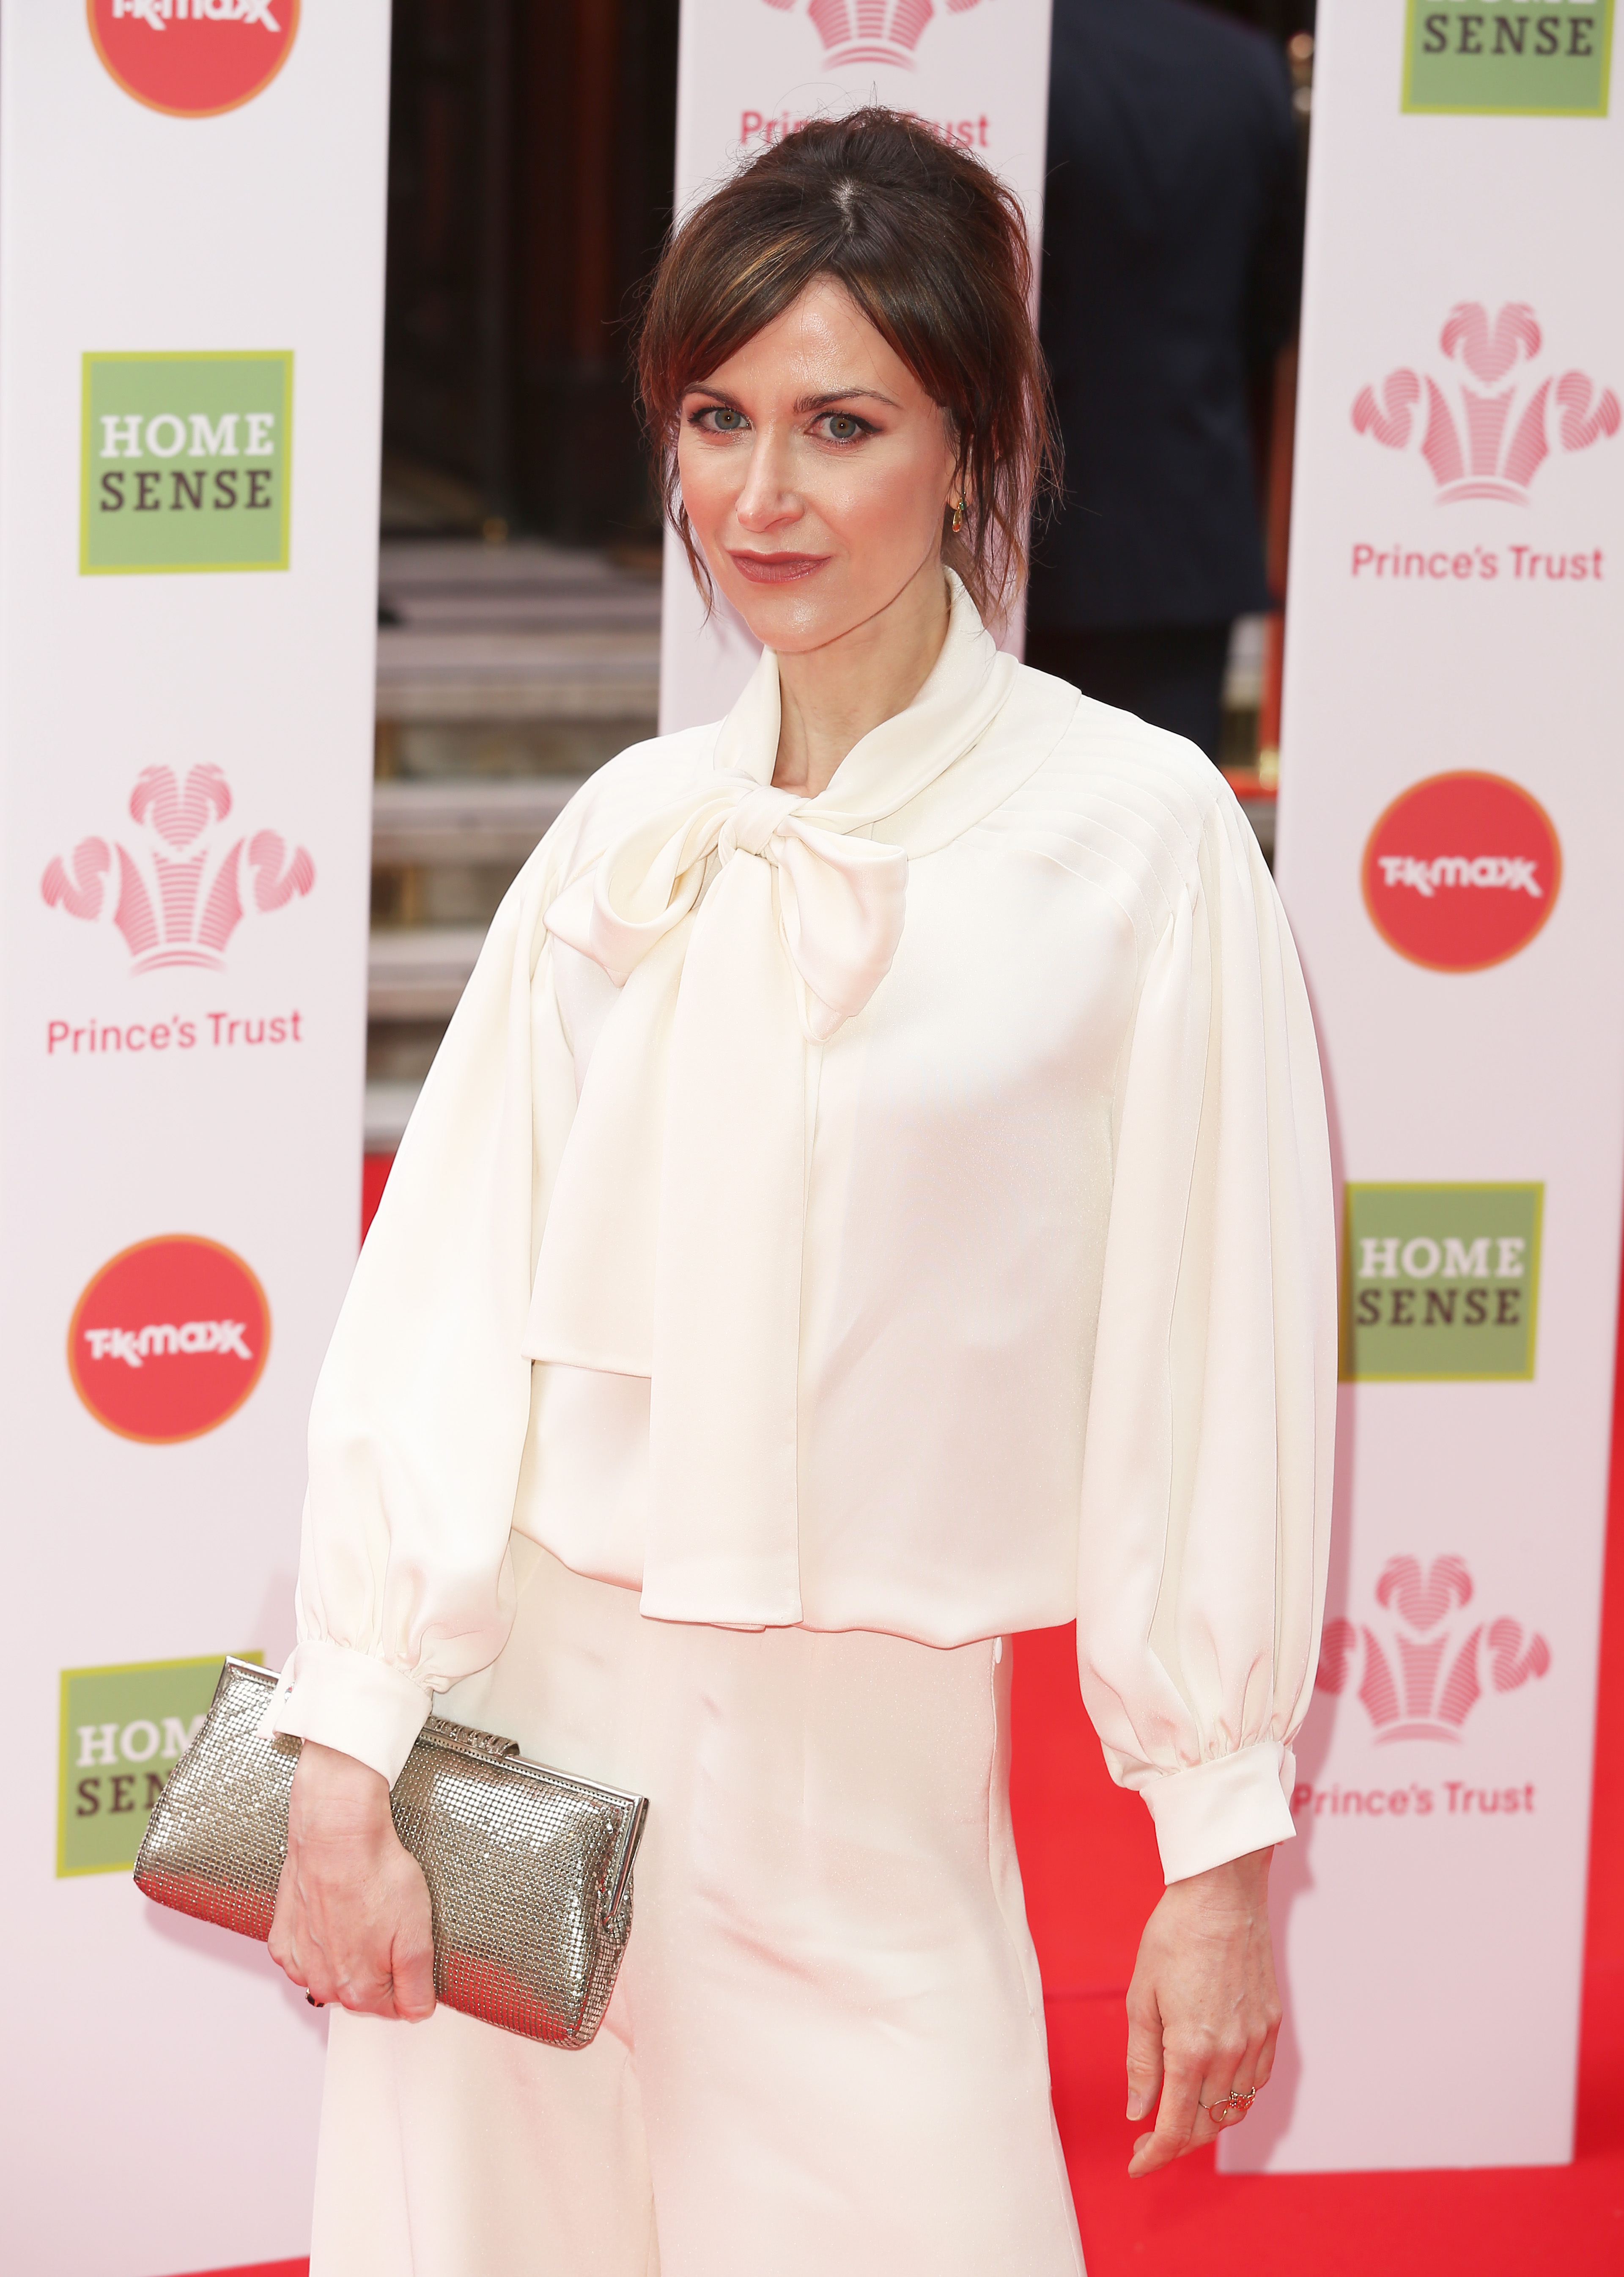 Celebrities attend The Prince's Trust and TKMaxx & Homesense Awards 2019 at the London Palladium Pictured: Katherine Kelly Ref: SPL5072154 130319 NON-EXCLUSIVE Picture by: Brett D. Cove / SplashNews.com Splash News and Pictures Los Angeles: 310-821-2666 New York: 212-619-2666 London: 0207 644 7656 Milan: 02 4399 8577 photodesk@splashnews.com World Rights